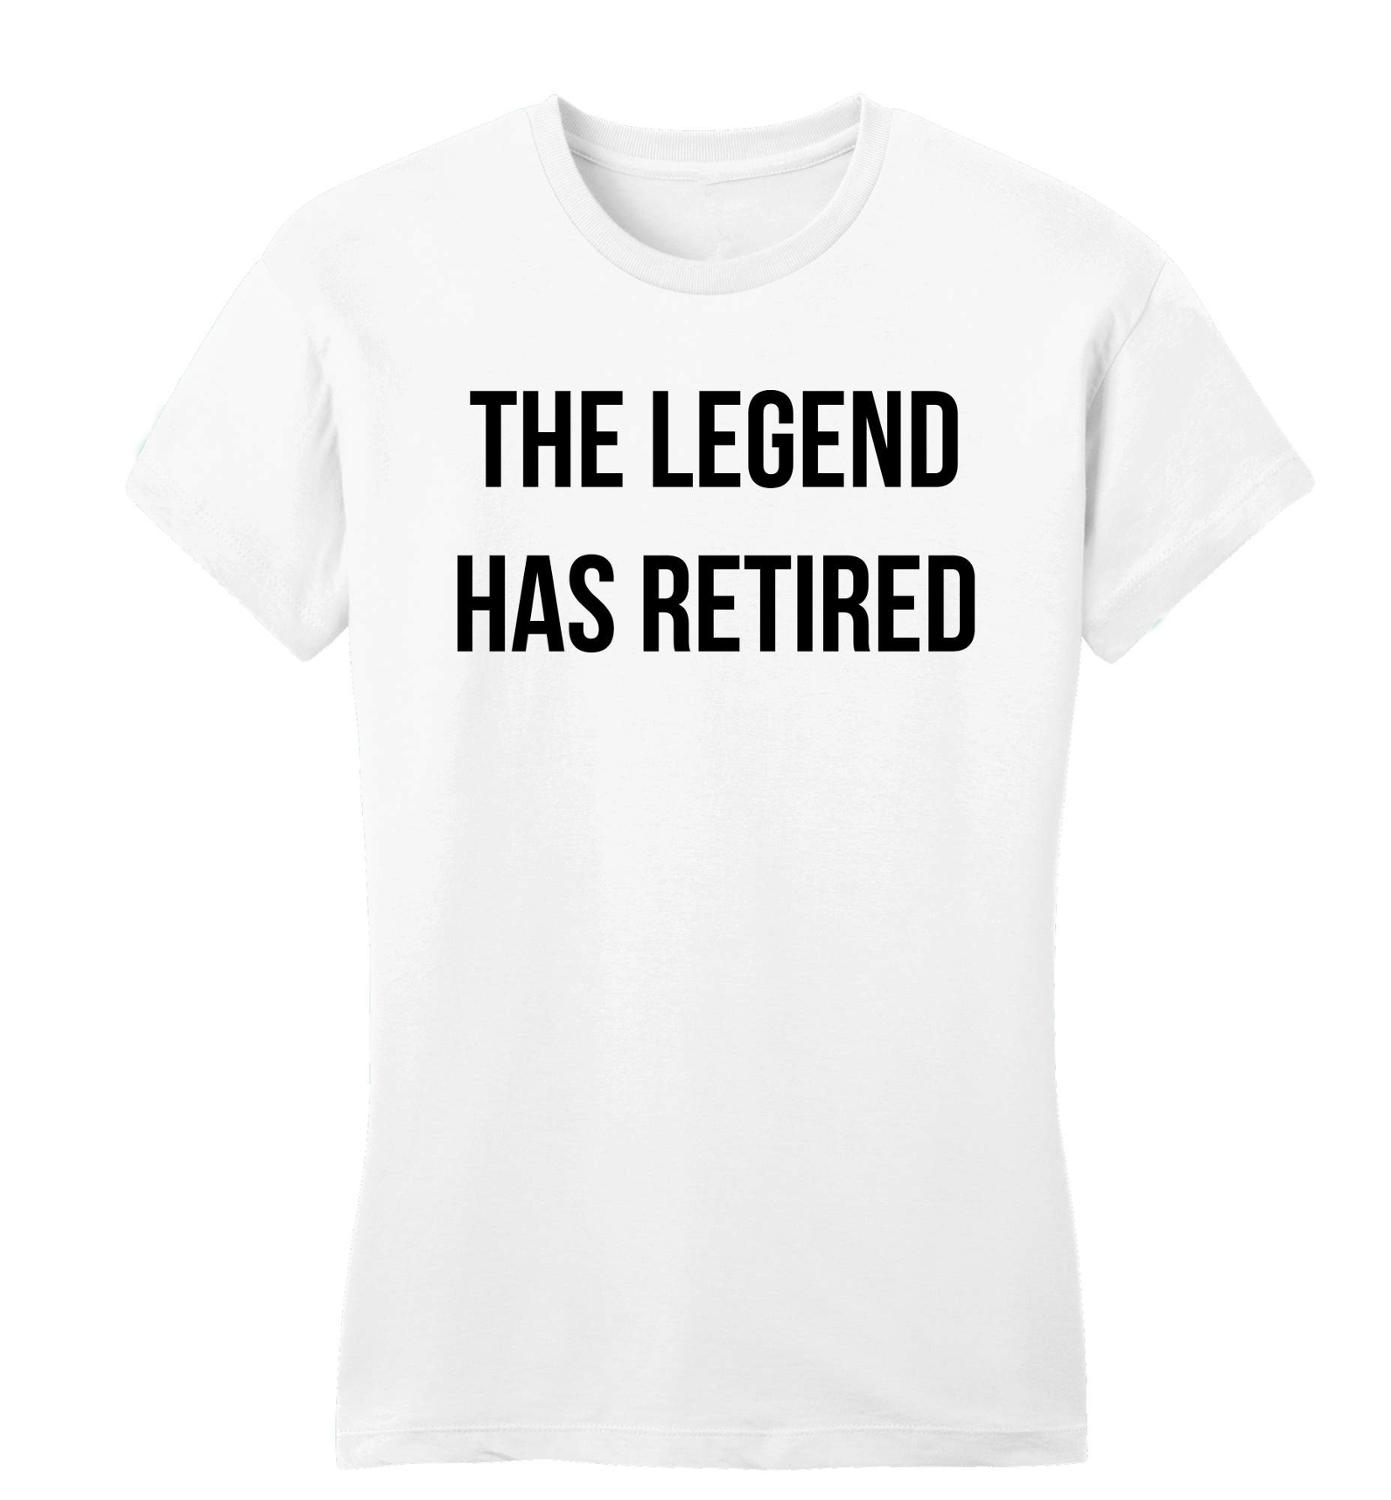 8646566f24f US $11.03 8% OFF|Funny Graphic Tees O Neck The Legend Has Retired Juniors  Petite Mothers Day Retirement Gift Women Short New Style Tee Shirt-in ...